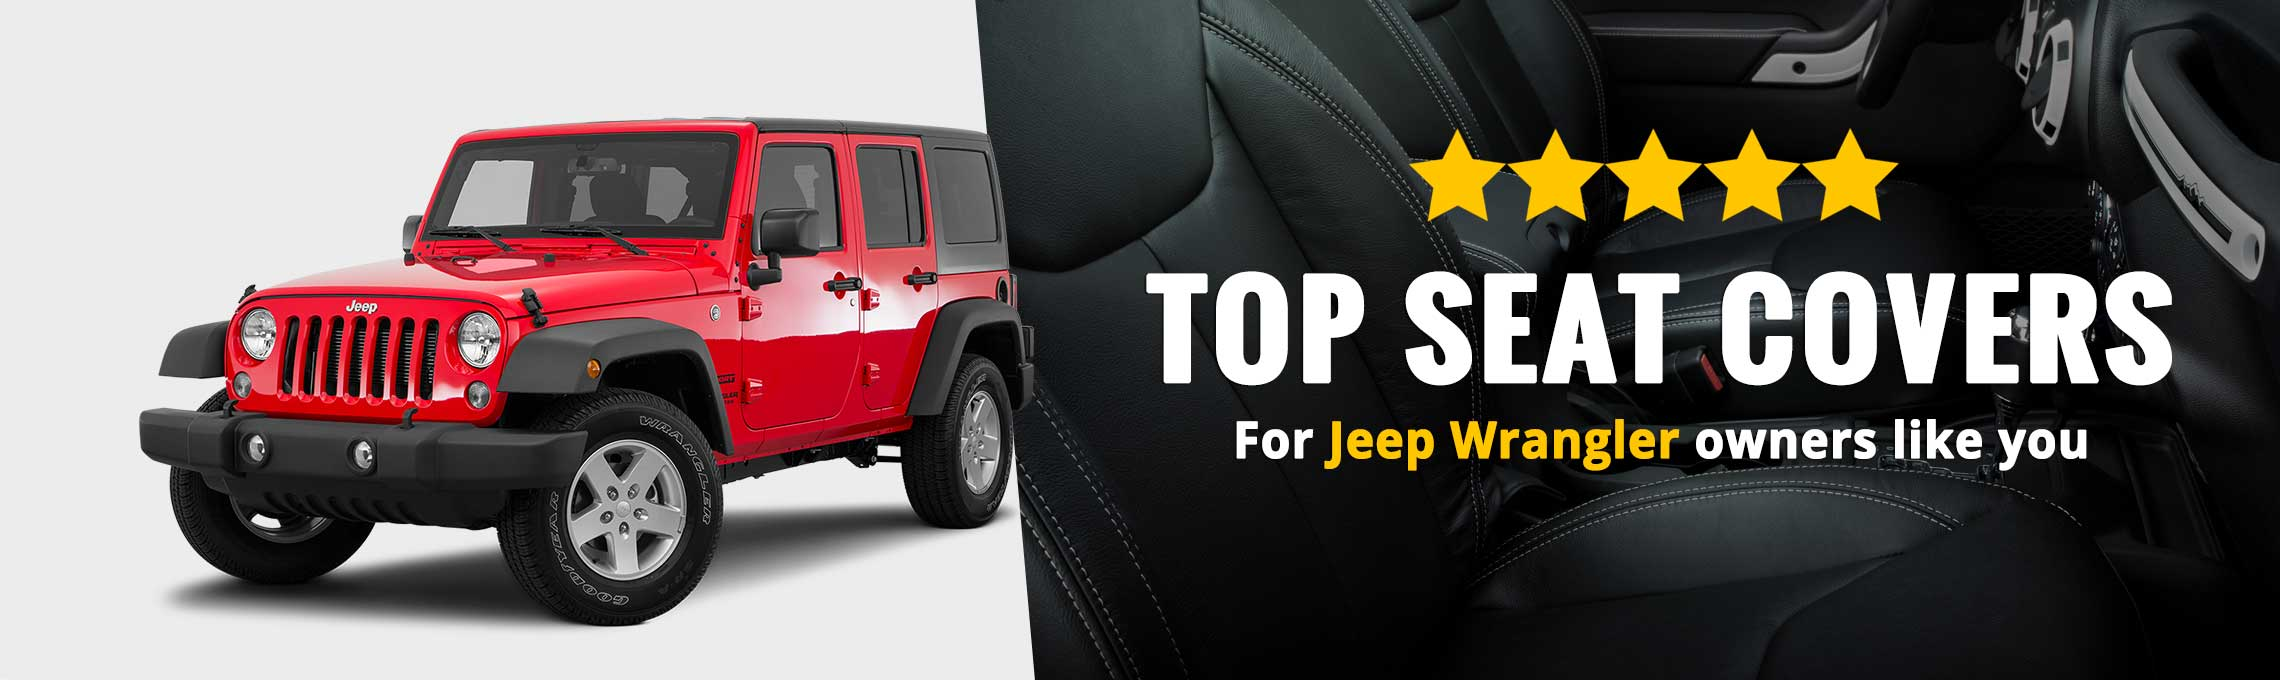 Jeep Wrangler Seat Covers | Custom Fit Seat Covers